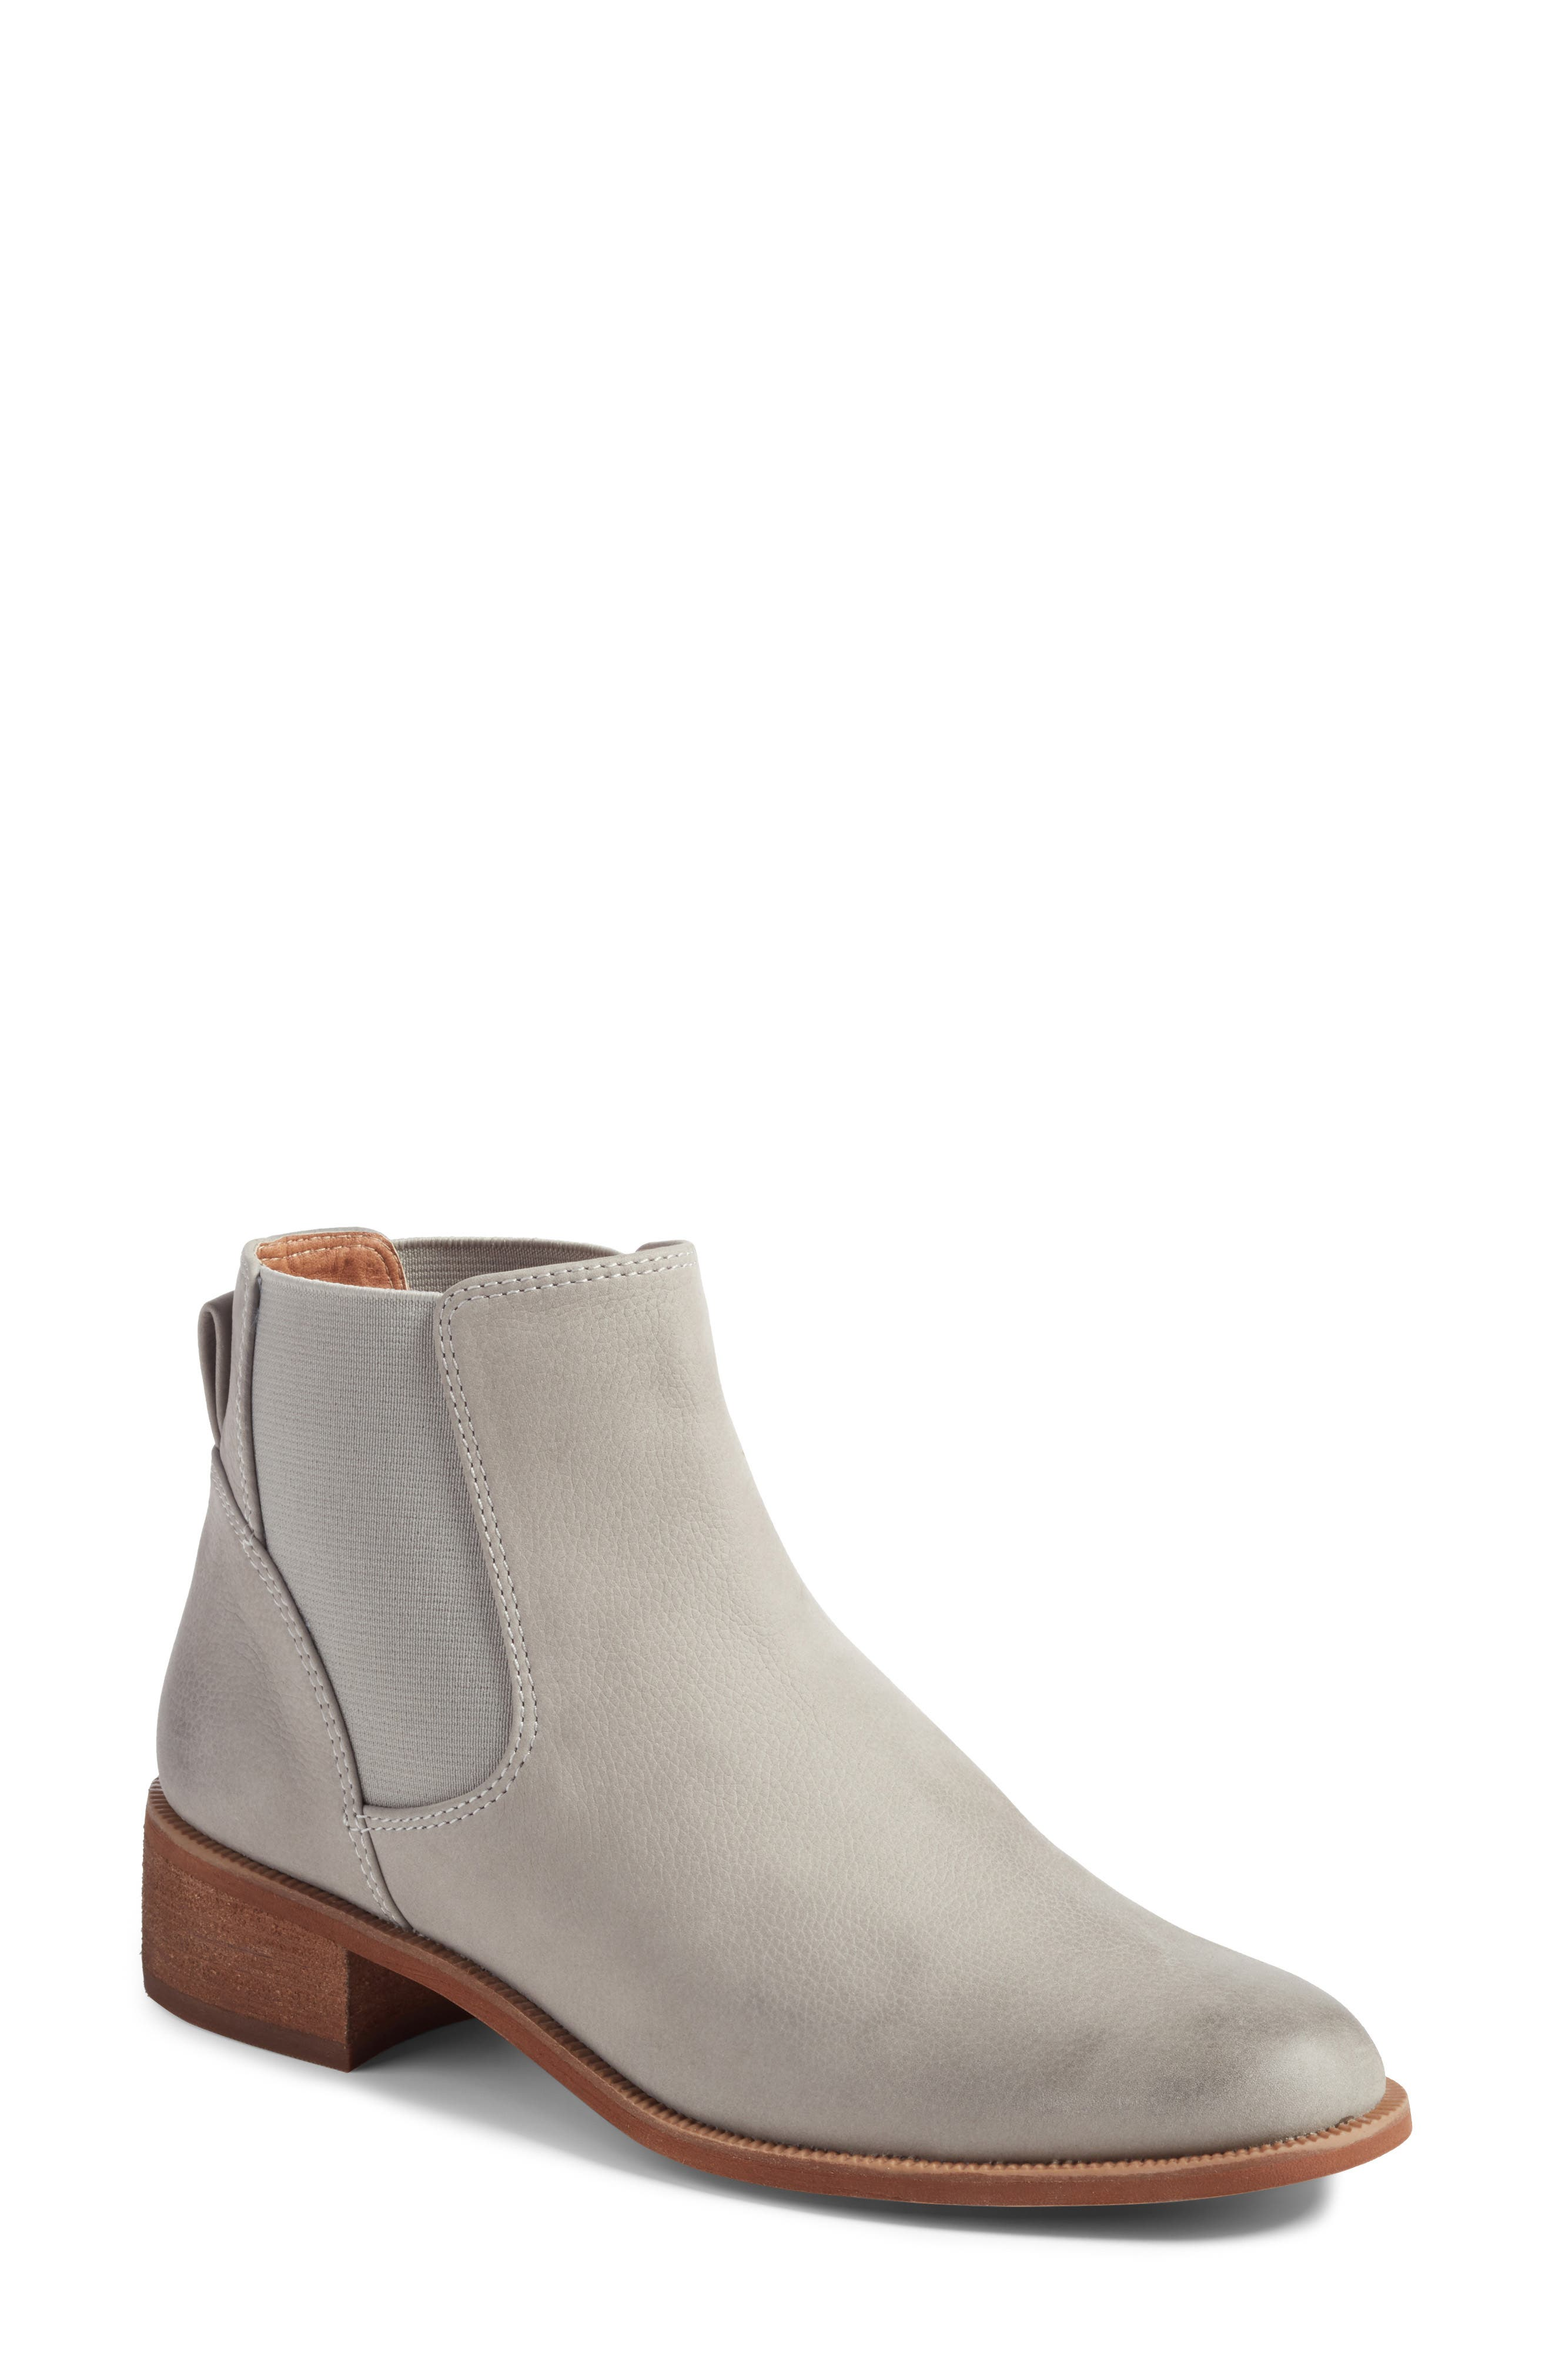 Brenna Water Resistant Bootie,                         Main,                         color, Mushroom Oiled Leather